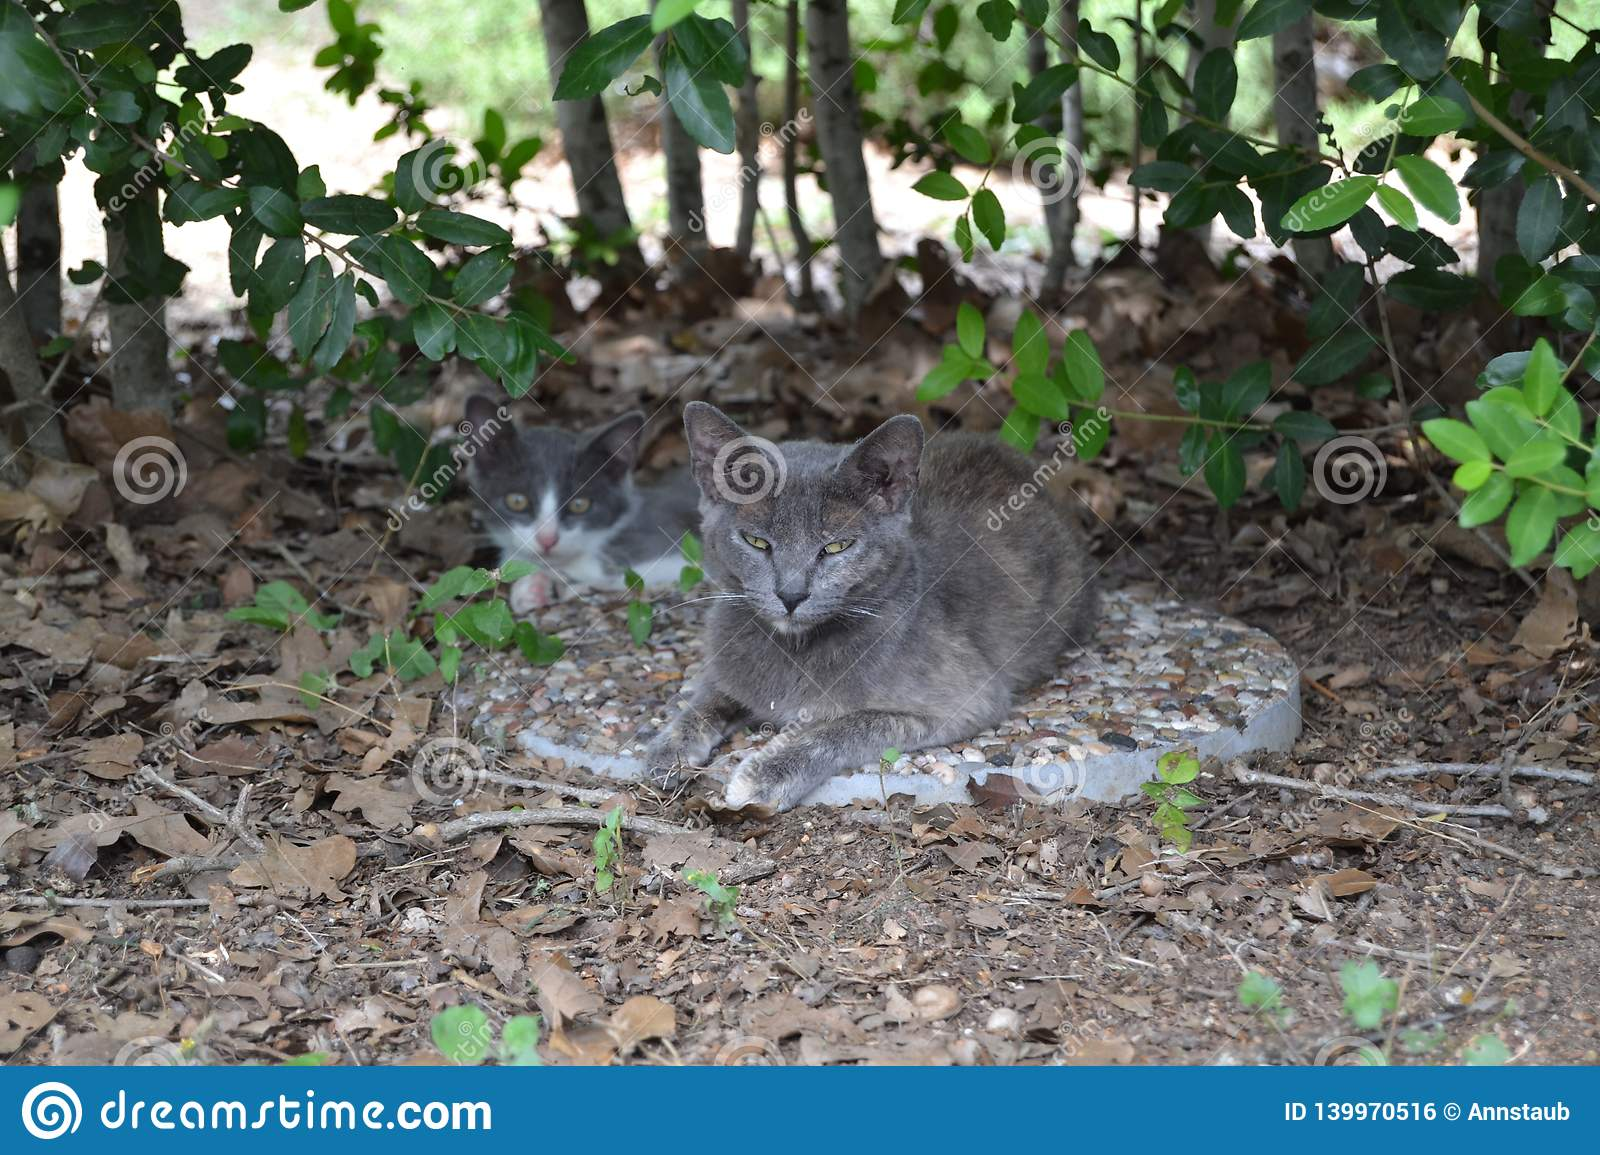 Feral mother cat and her baby